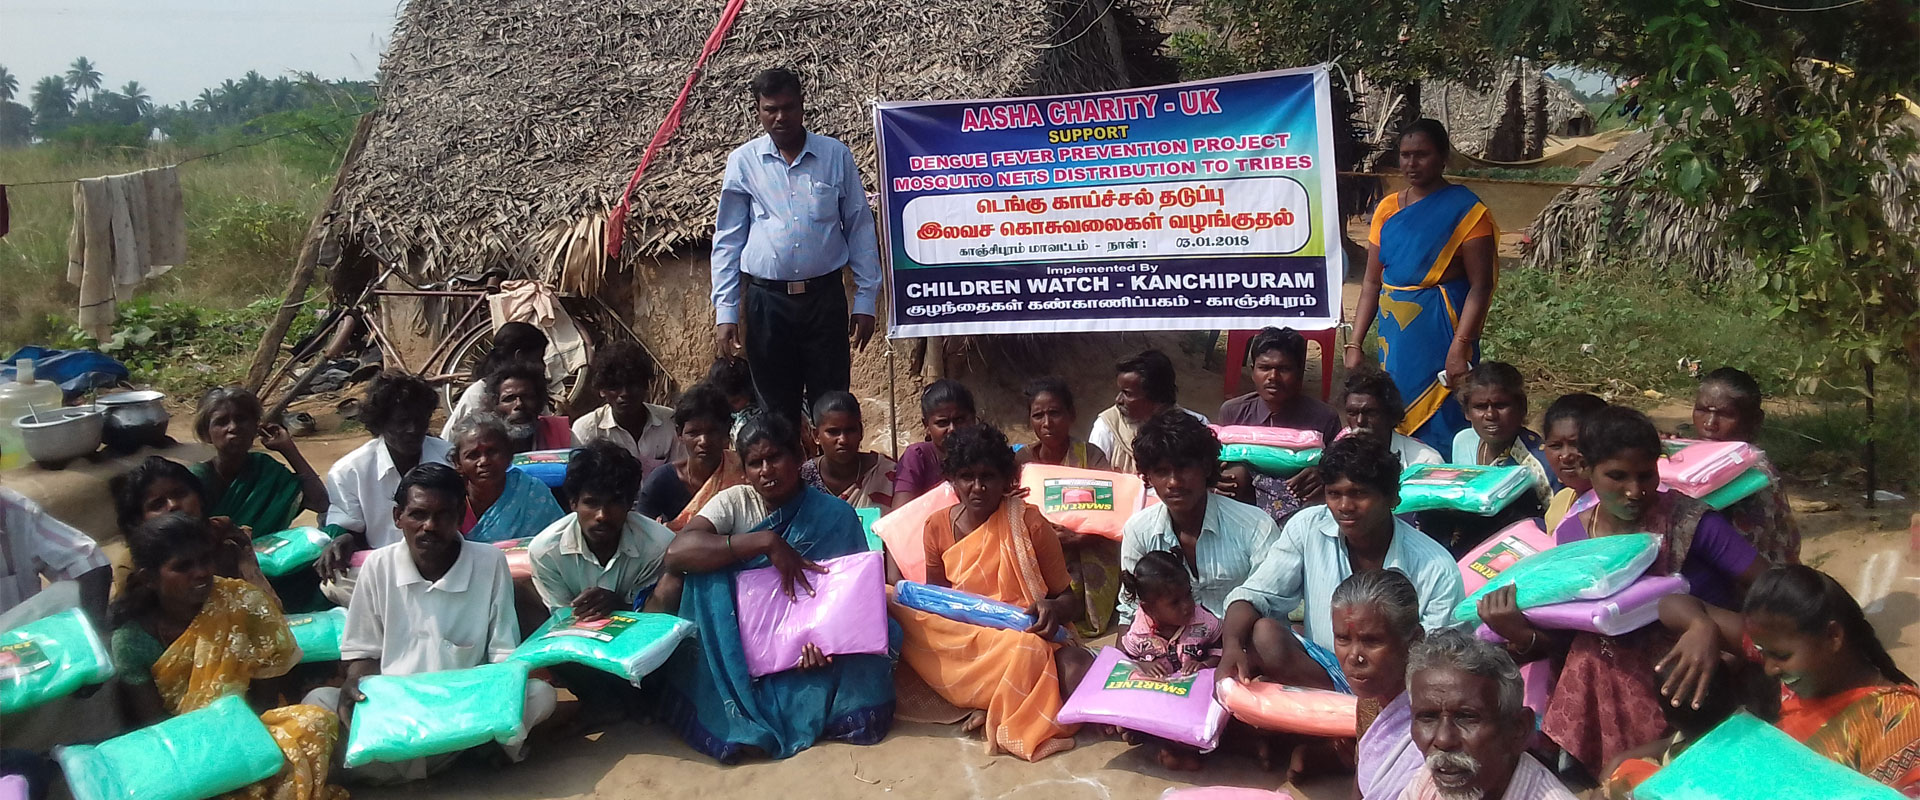 Aasha Poverty Relief